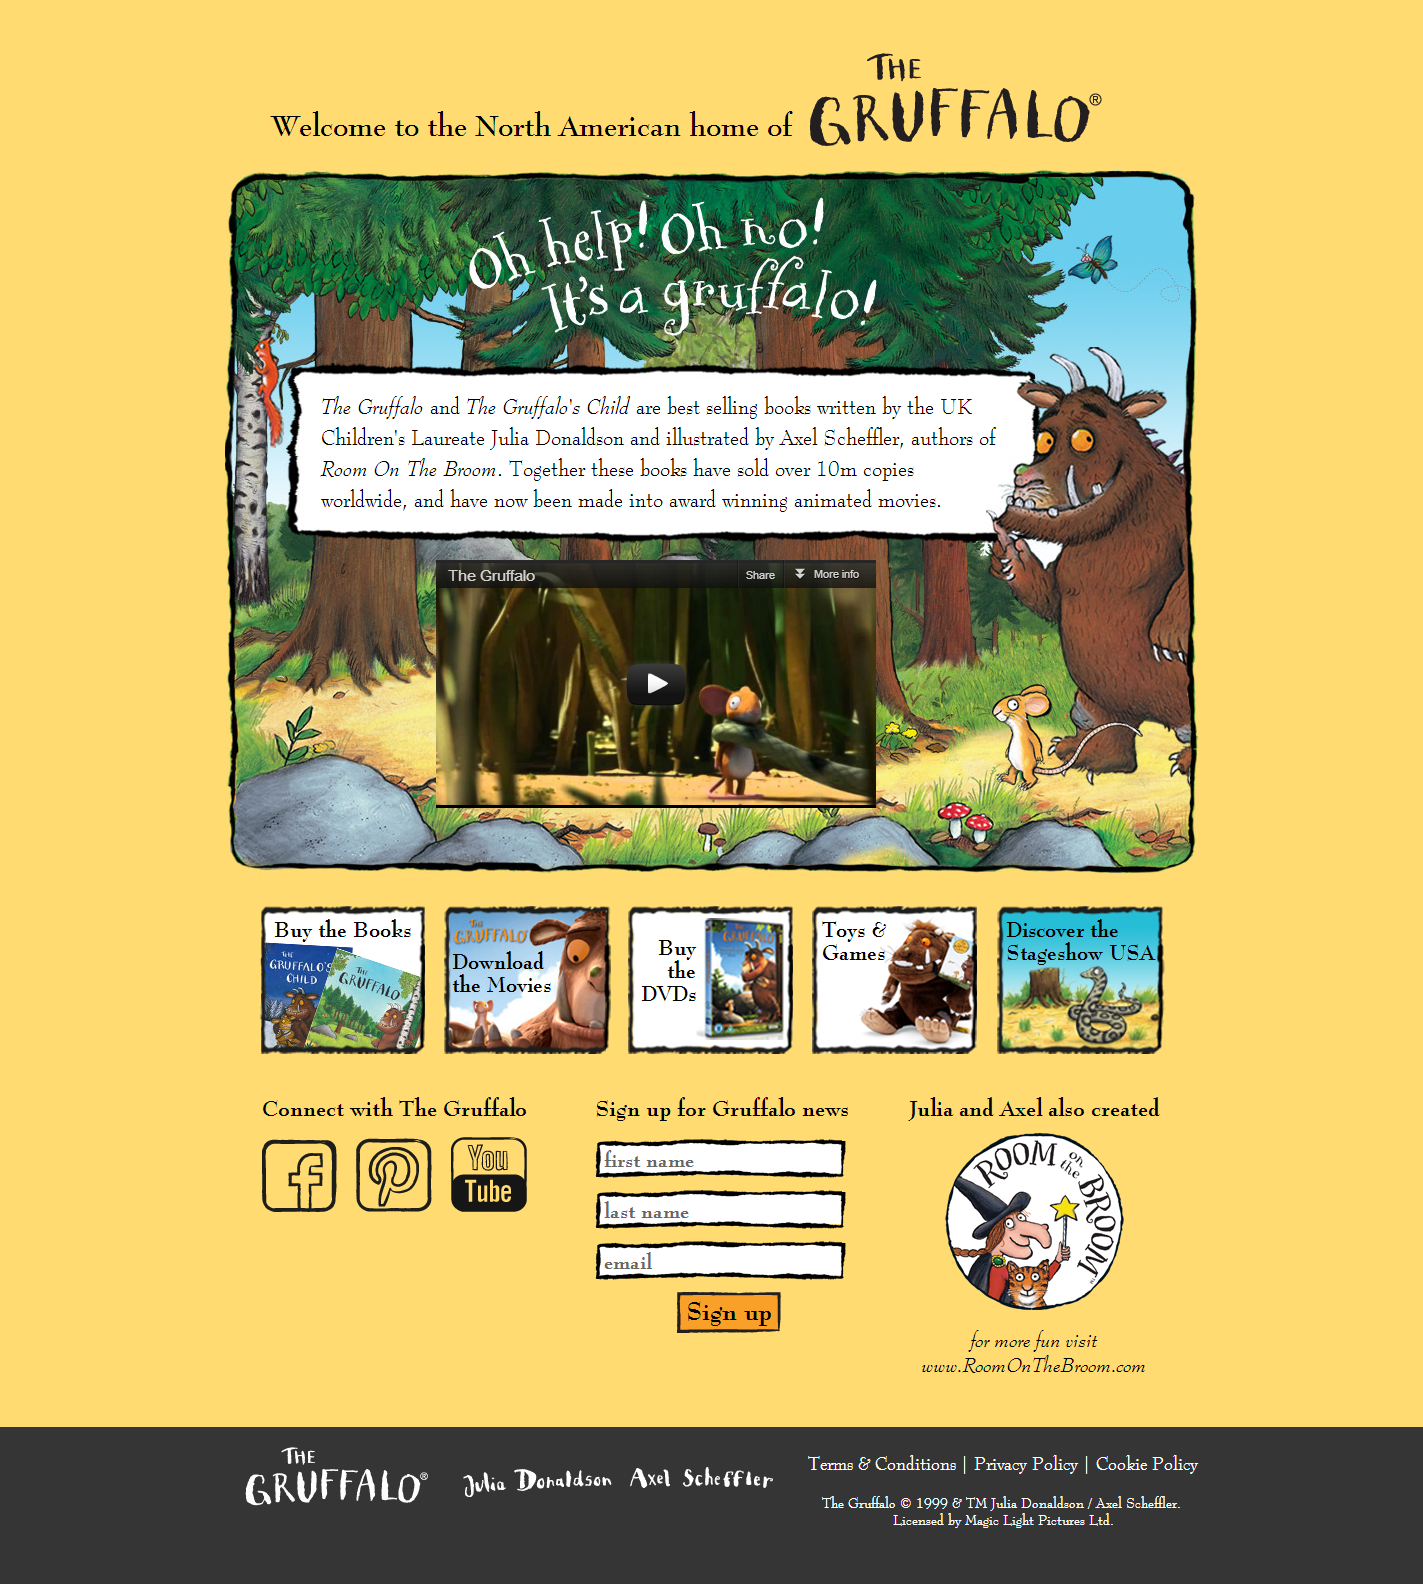 New Home for The Gruffalo in North America